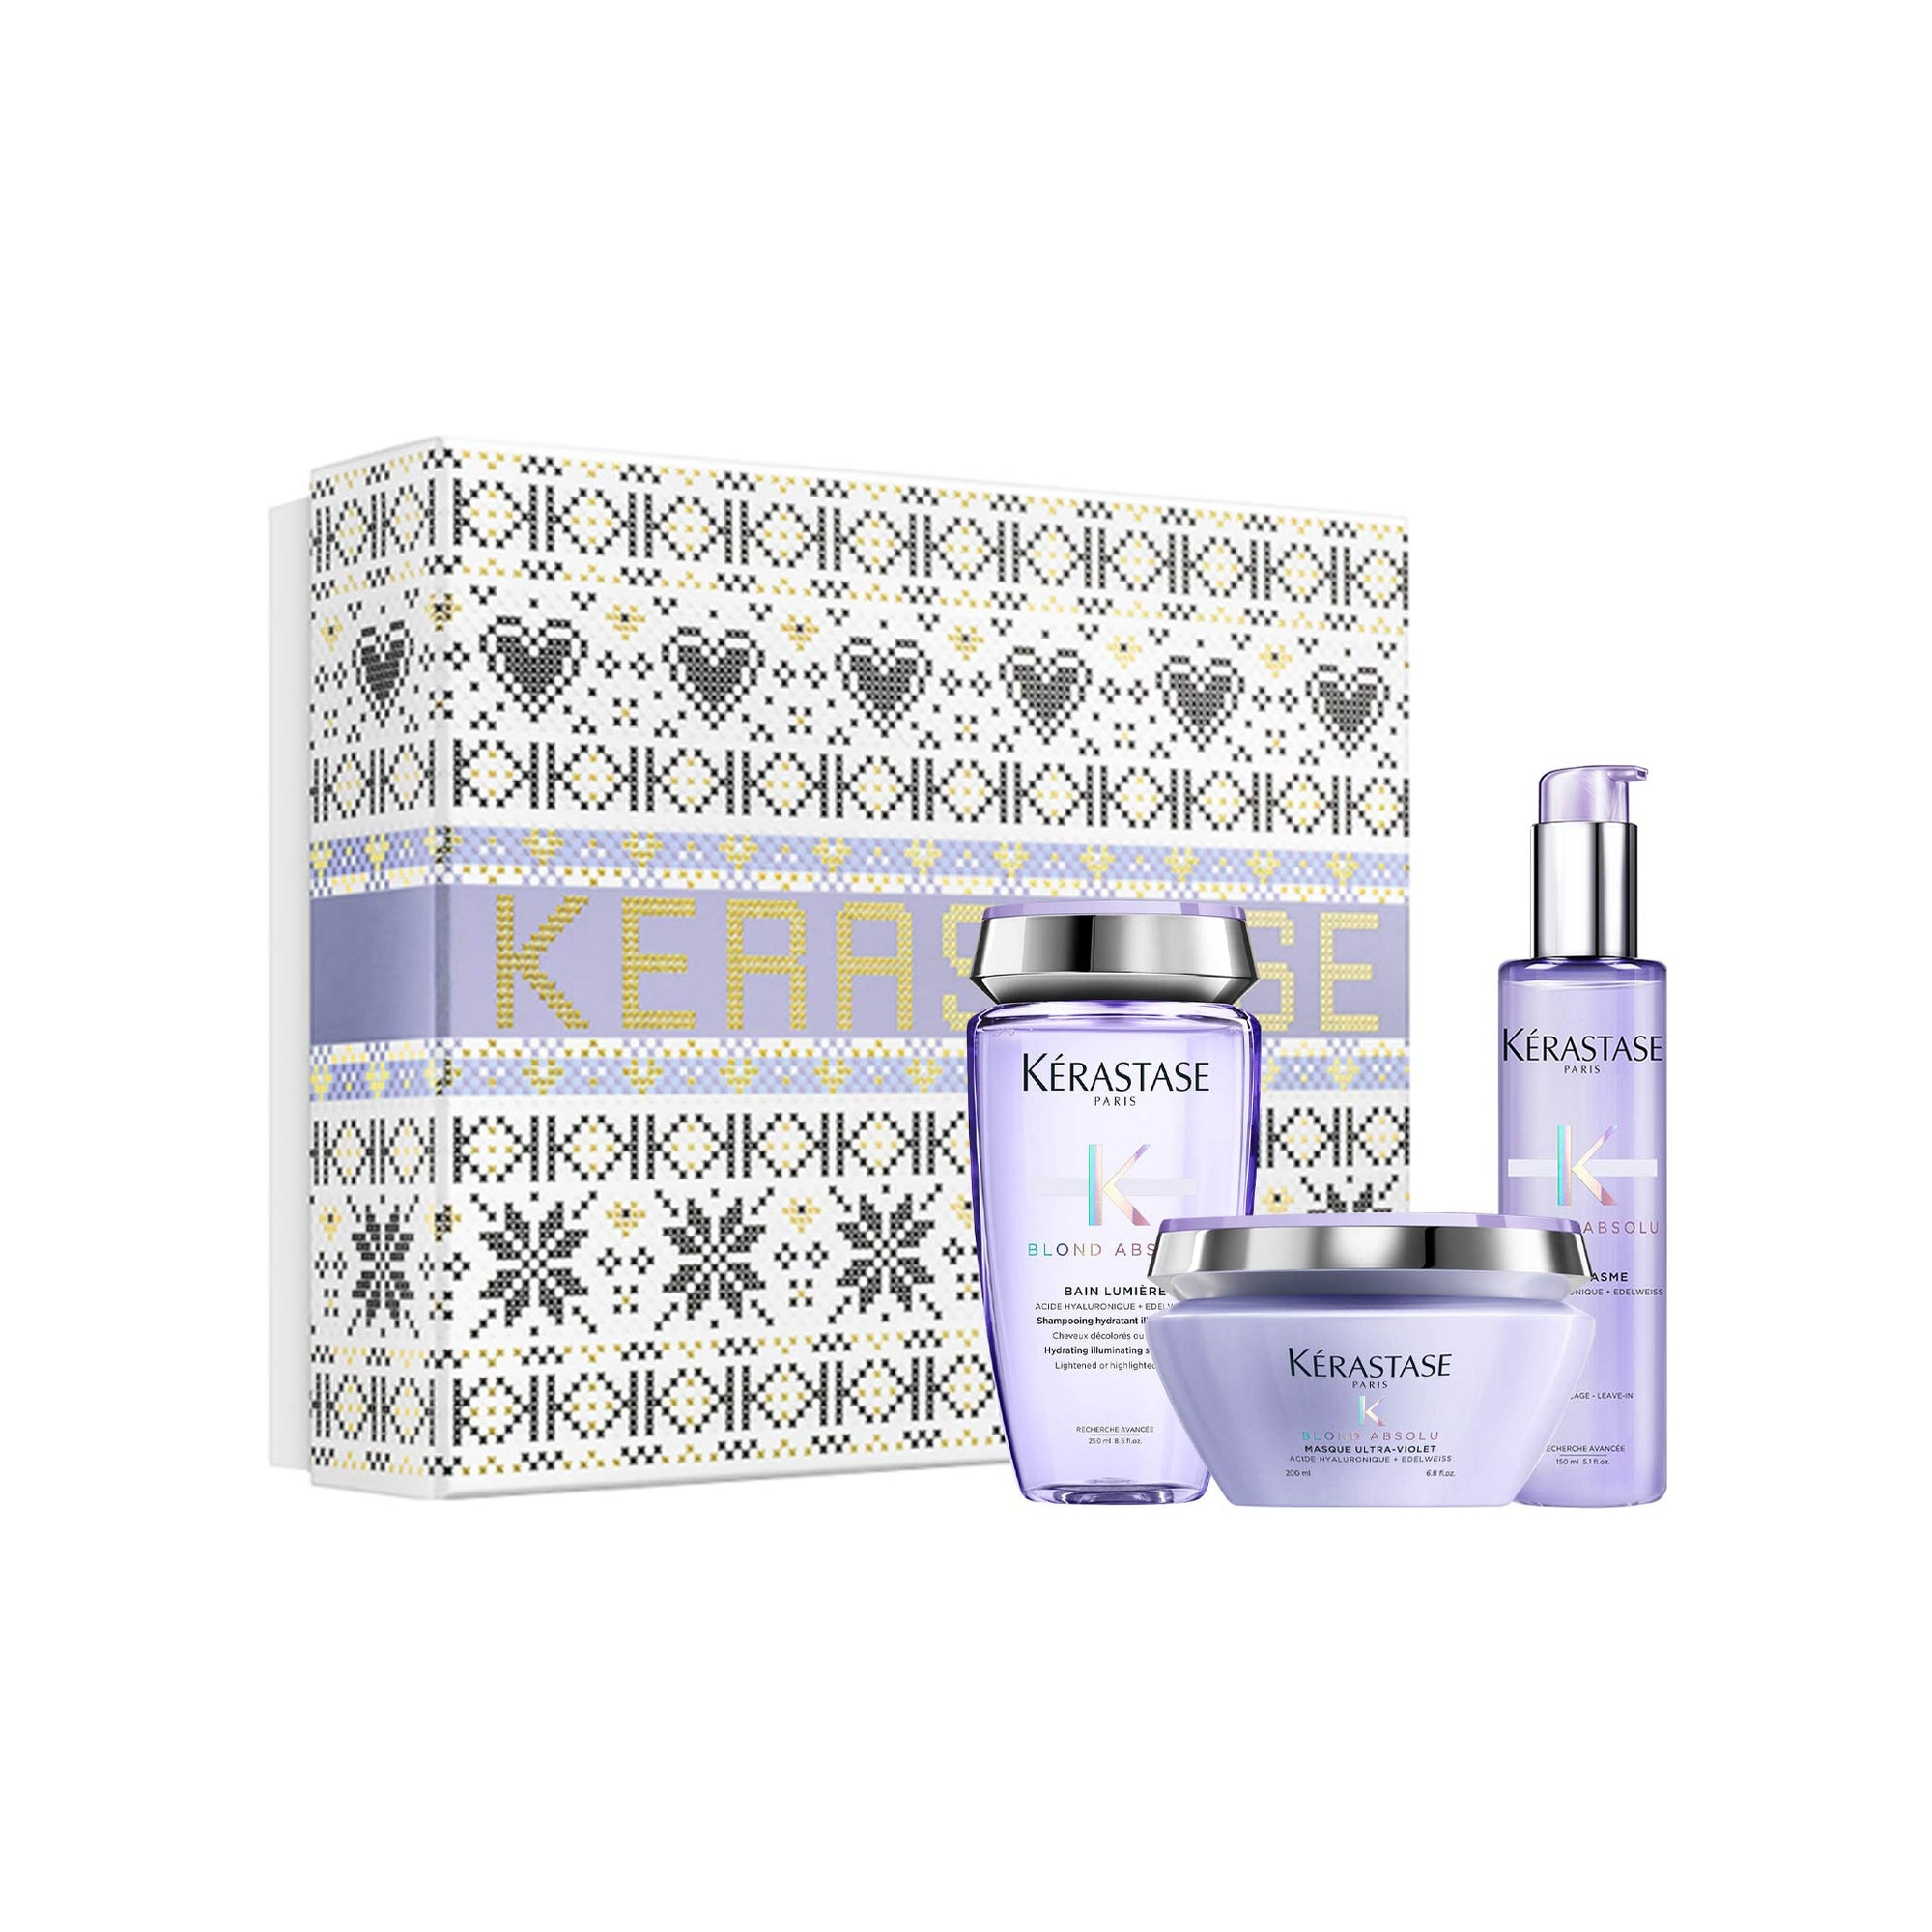 Kérastase Blond Absolu Luxury Masque Gift Set For Lightened Hair